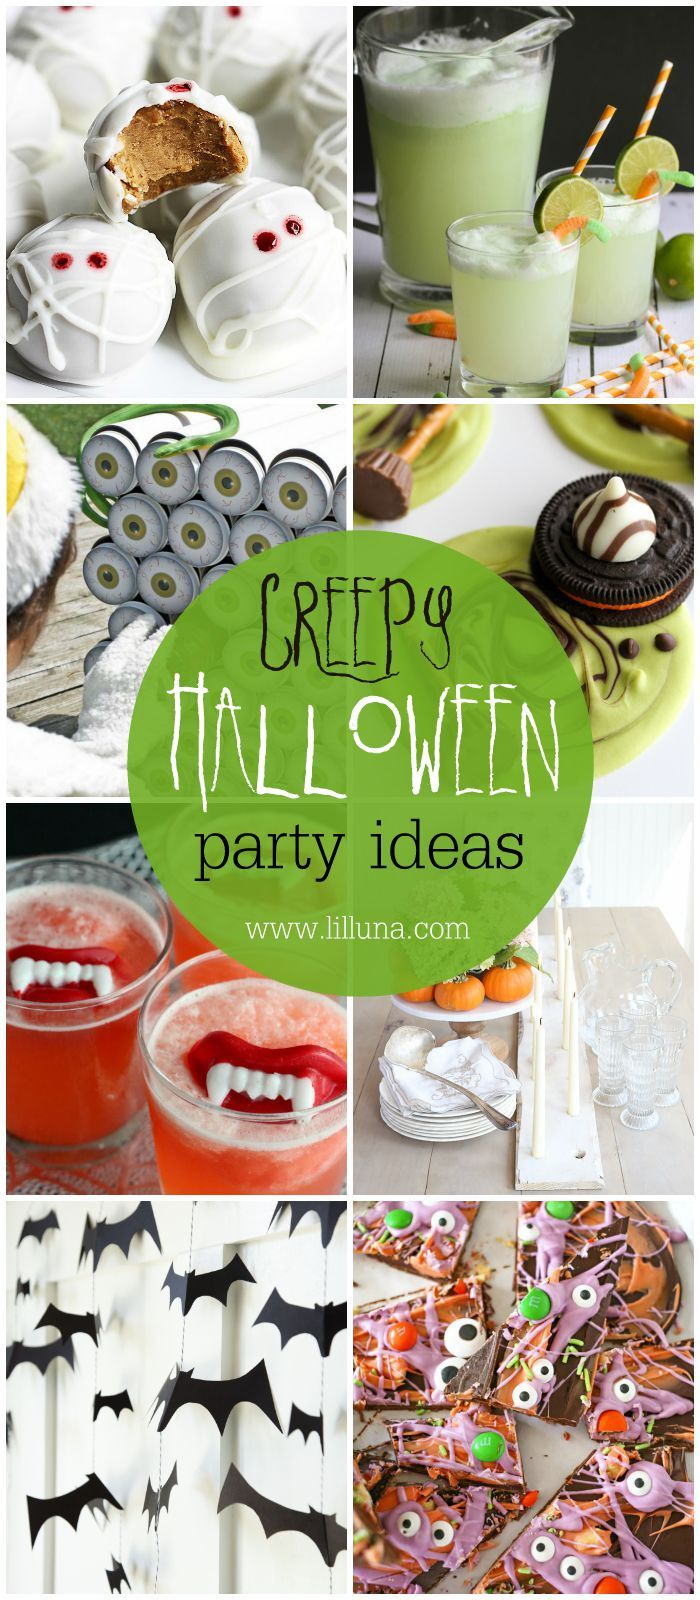 104 best images about Halloween Inspiration on Pinterest ...